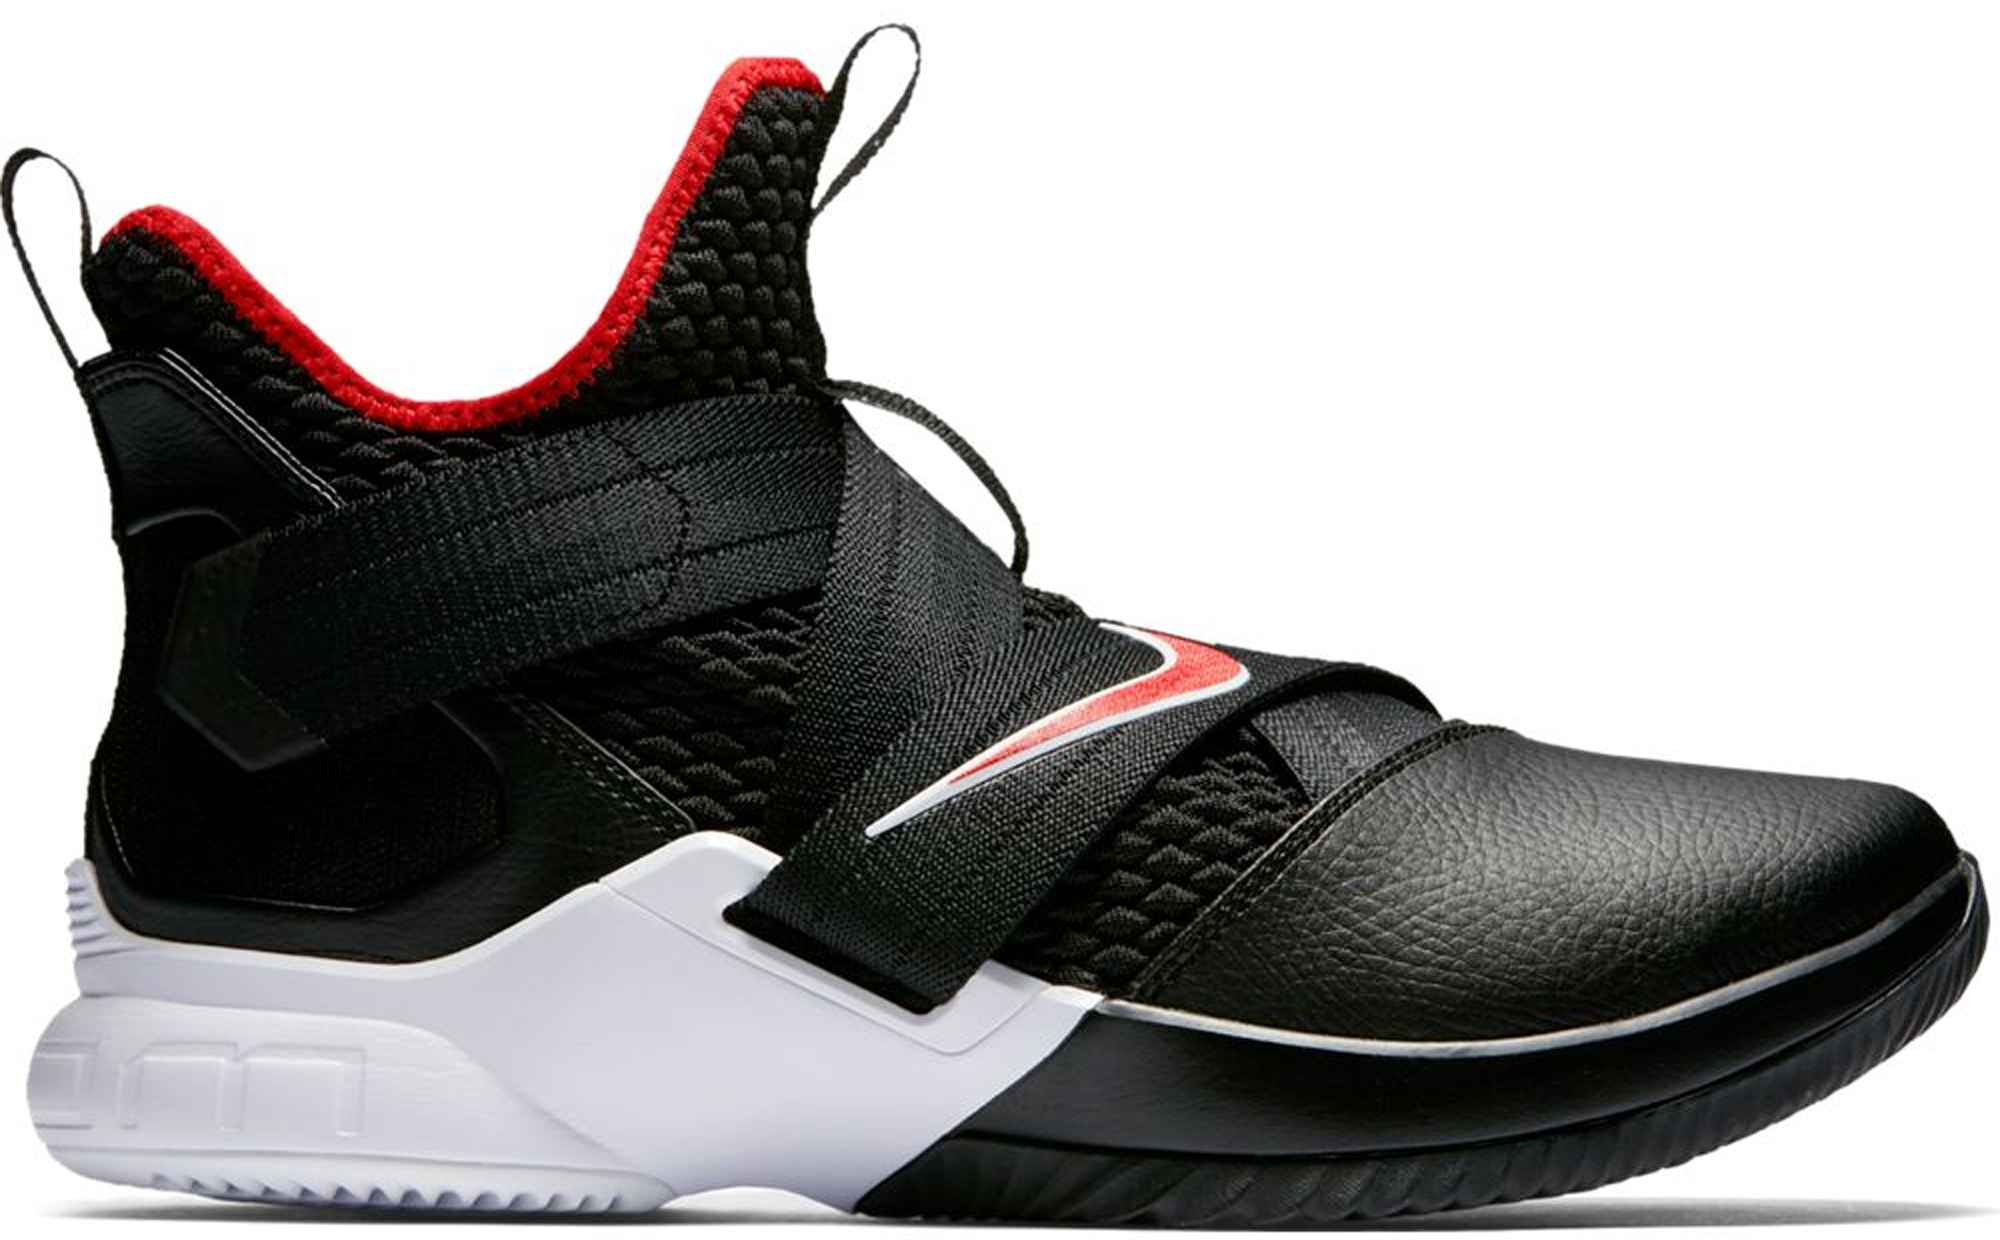 LeBron Zoom Soldier 12 Bred